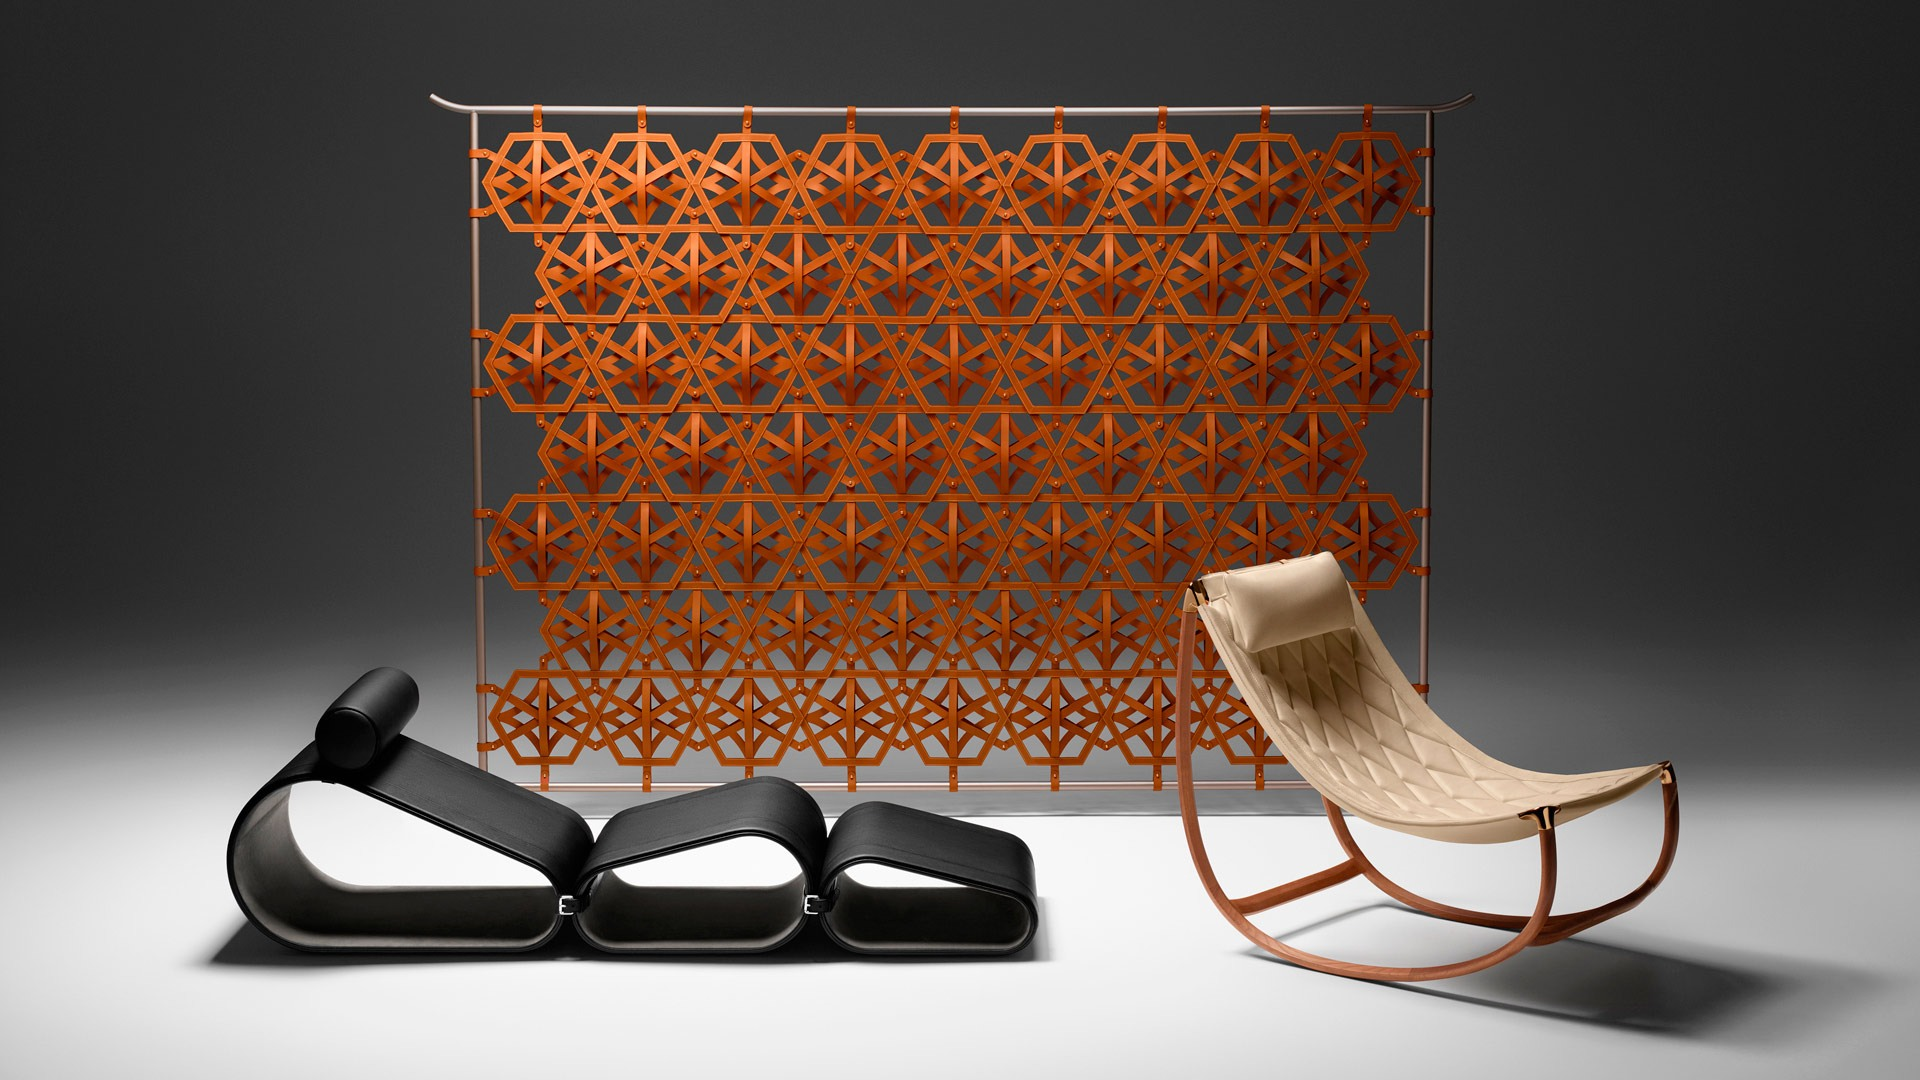 Contemporary Design Best Interior Designers in the World - Marcel Wanders - Product Designs contemporary design Contemporary Design: Best Designers and Architects in the World Contemporary Design Best Interior Designers in the World Marcel Wanders Product Designs